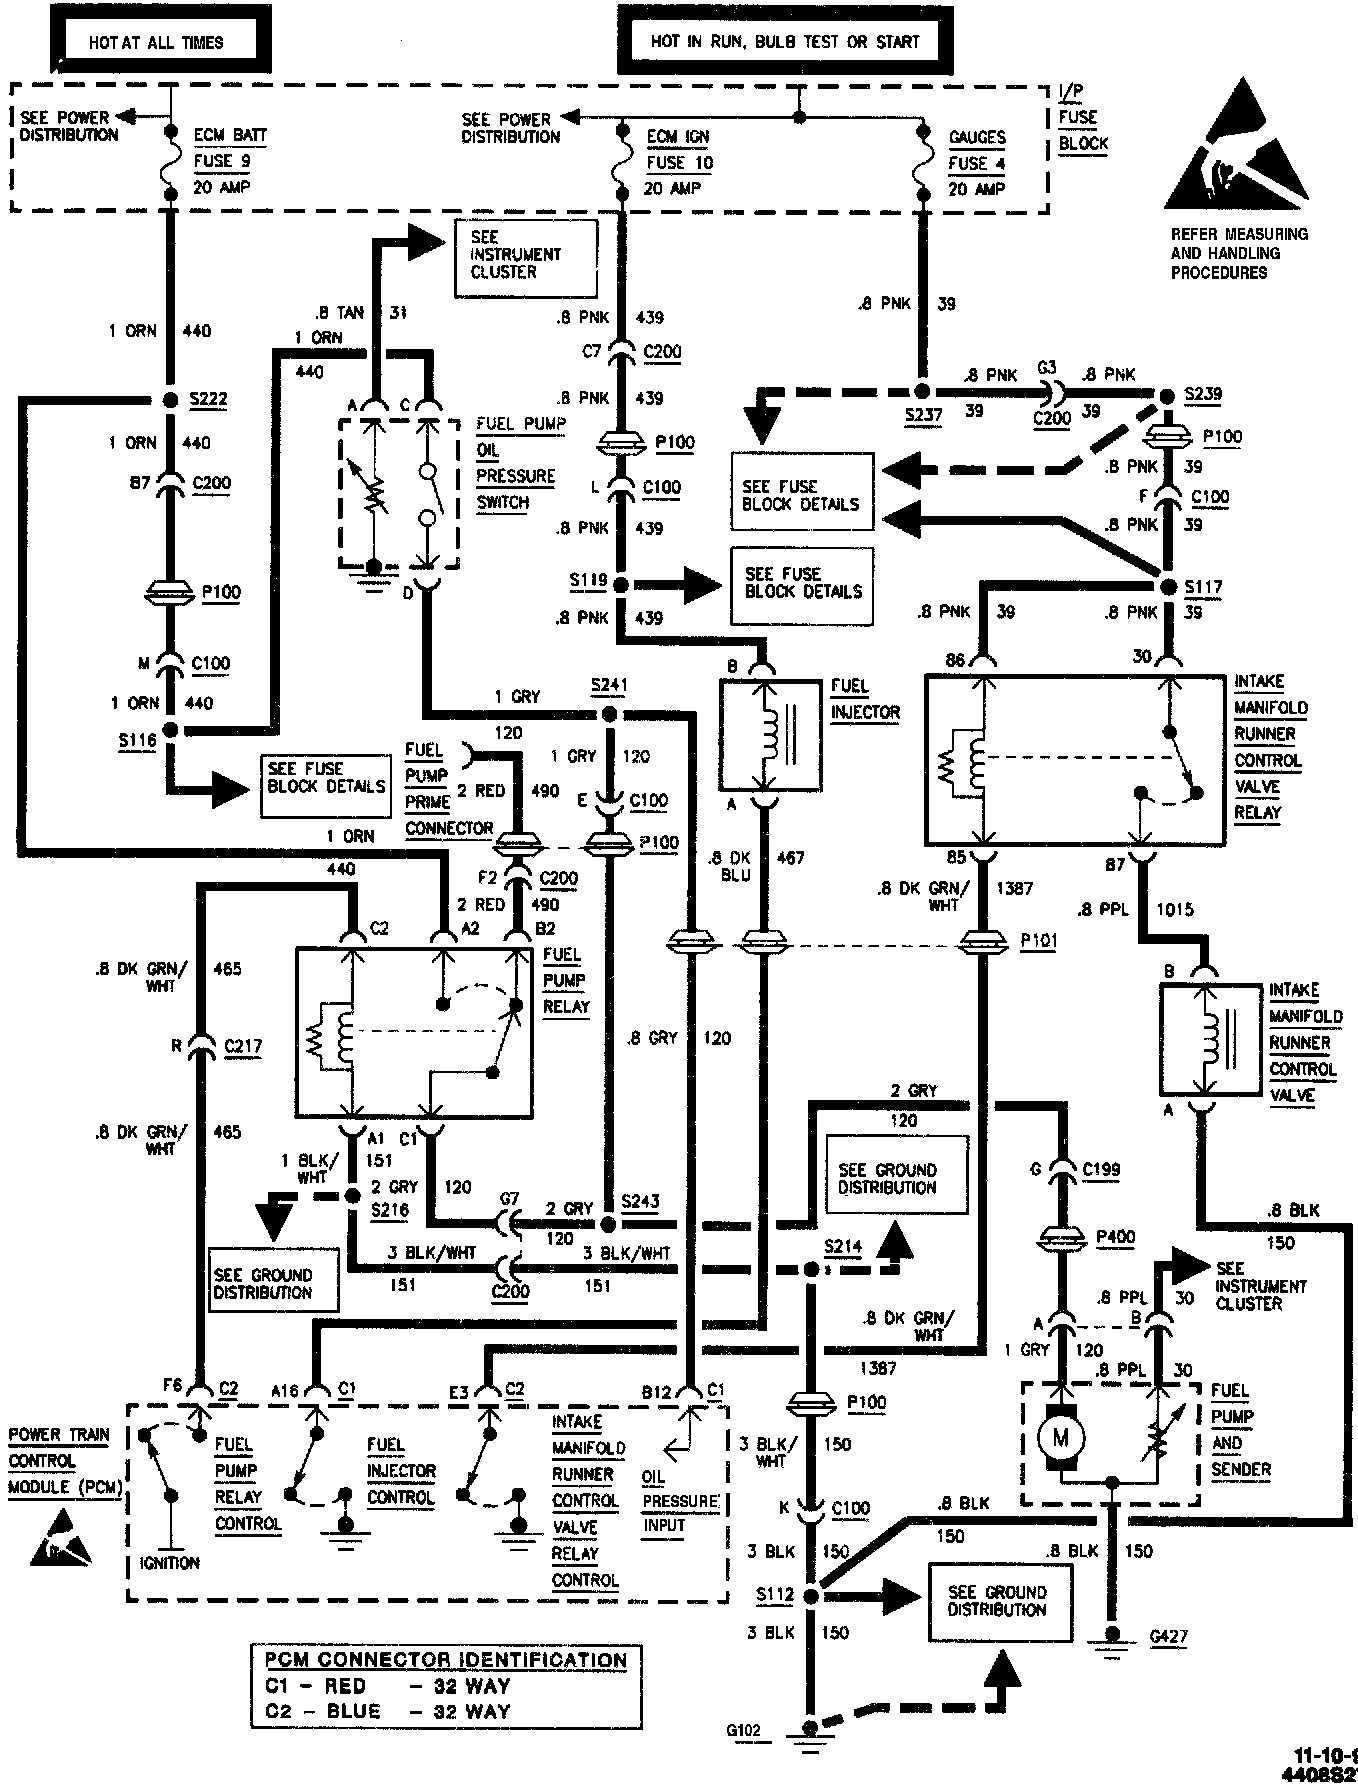 Mack truck fuel system diagram diagram in addition fuel pump wiring rh detoxicrecenze 96 chevy blazer fuel pump wiring diagram chevy truck fuel system